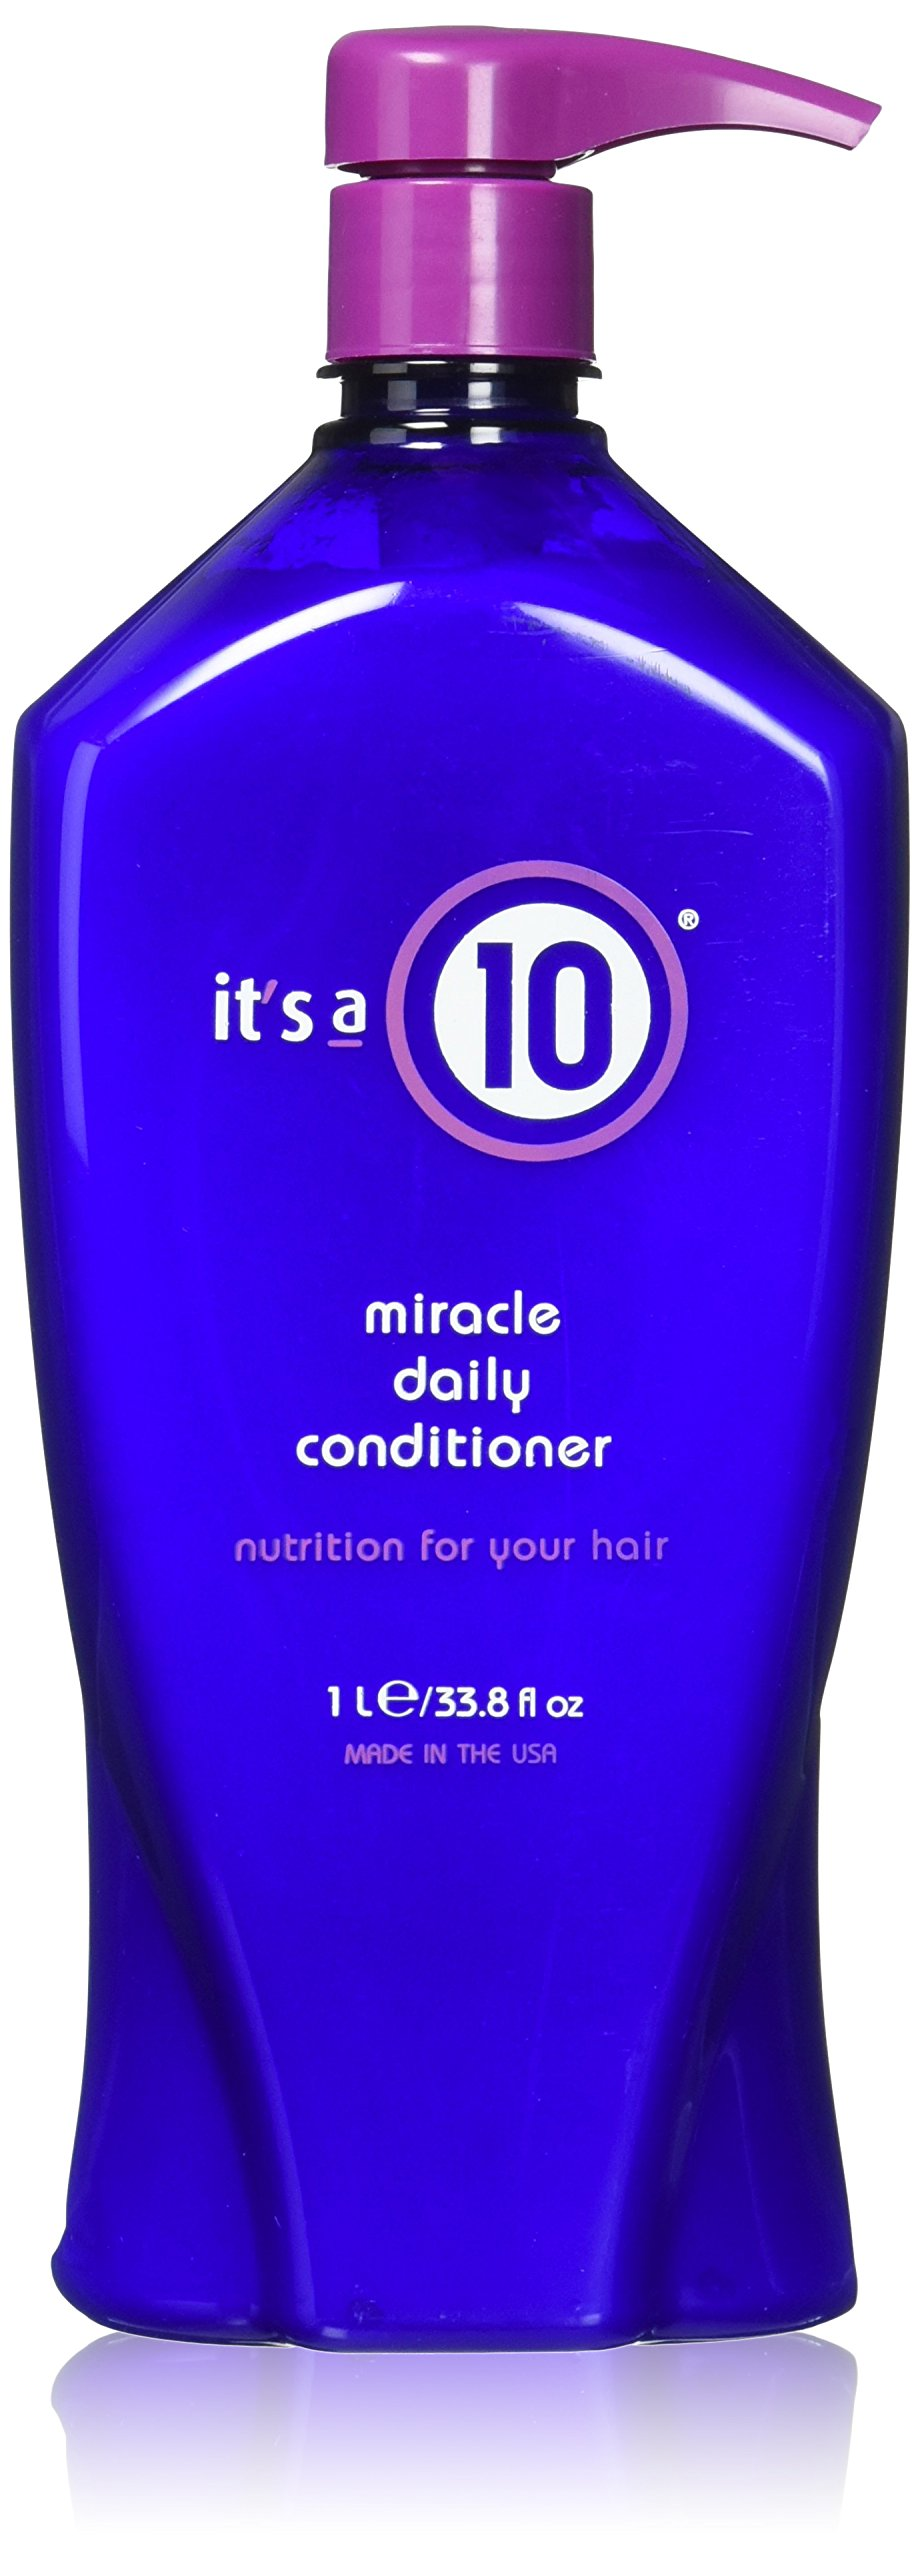 It's a 10 Miracle Daily Conditioner 33.8 oz